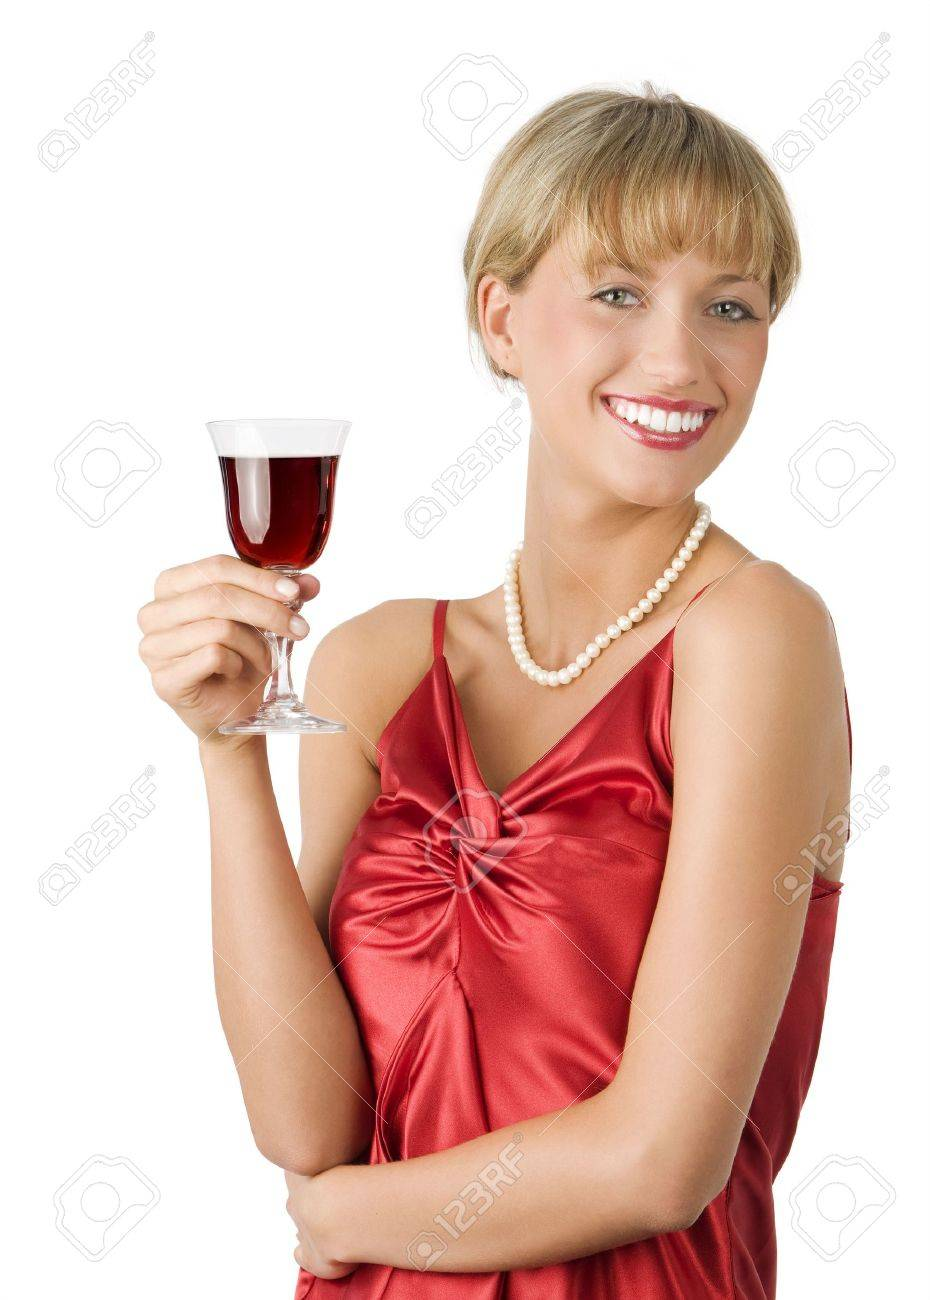 stylish lady in red dress drinking a glass of red wine with a great smile Stock Photo - 3429396